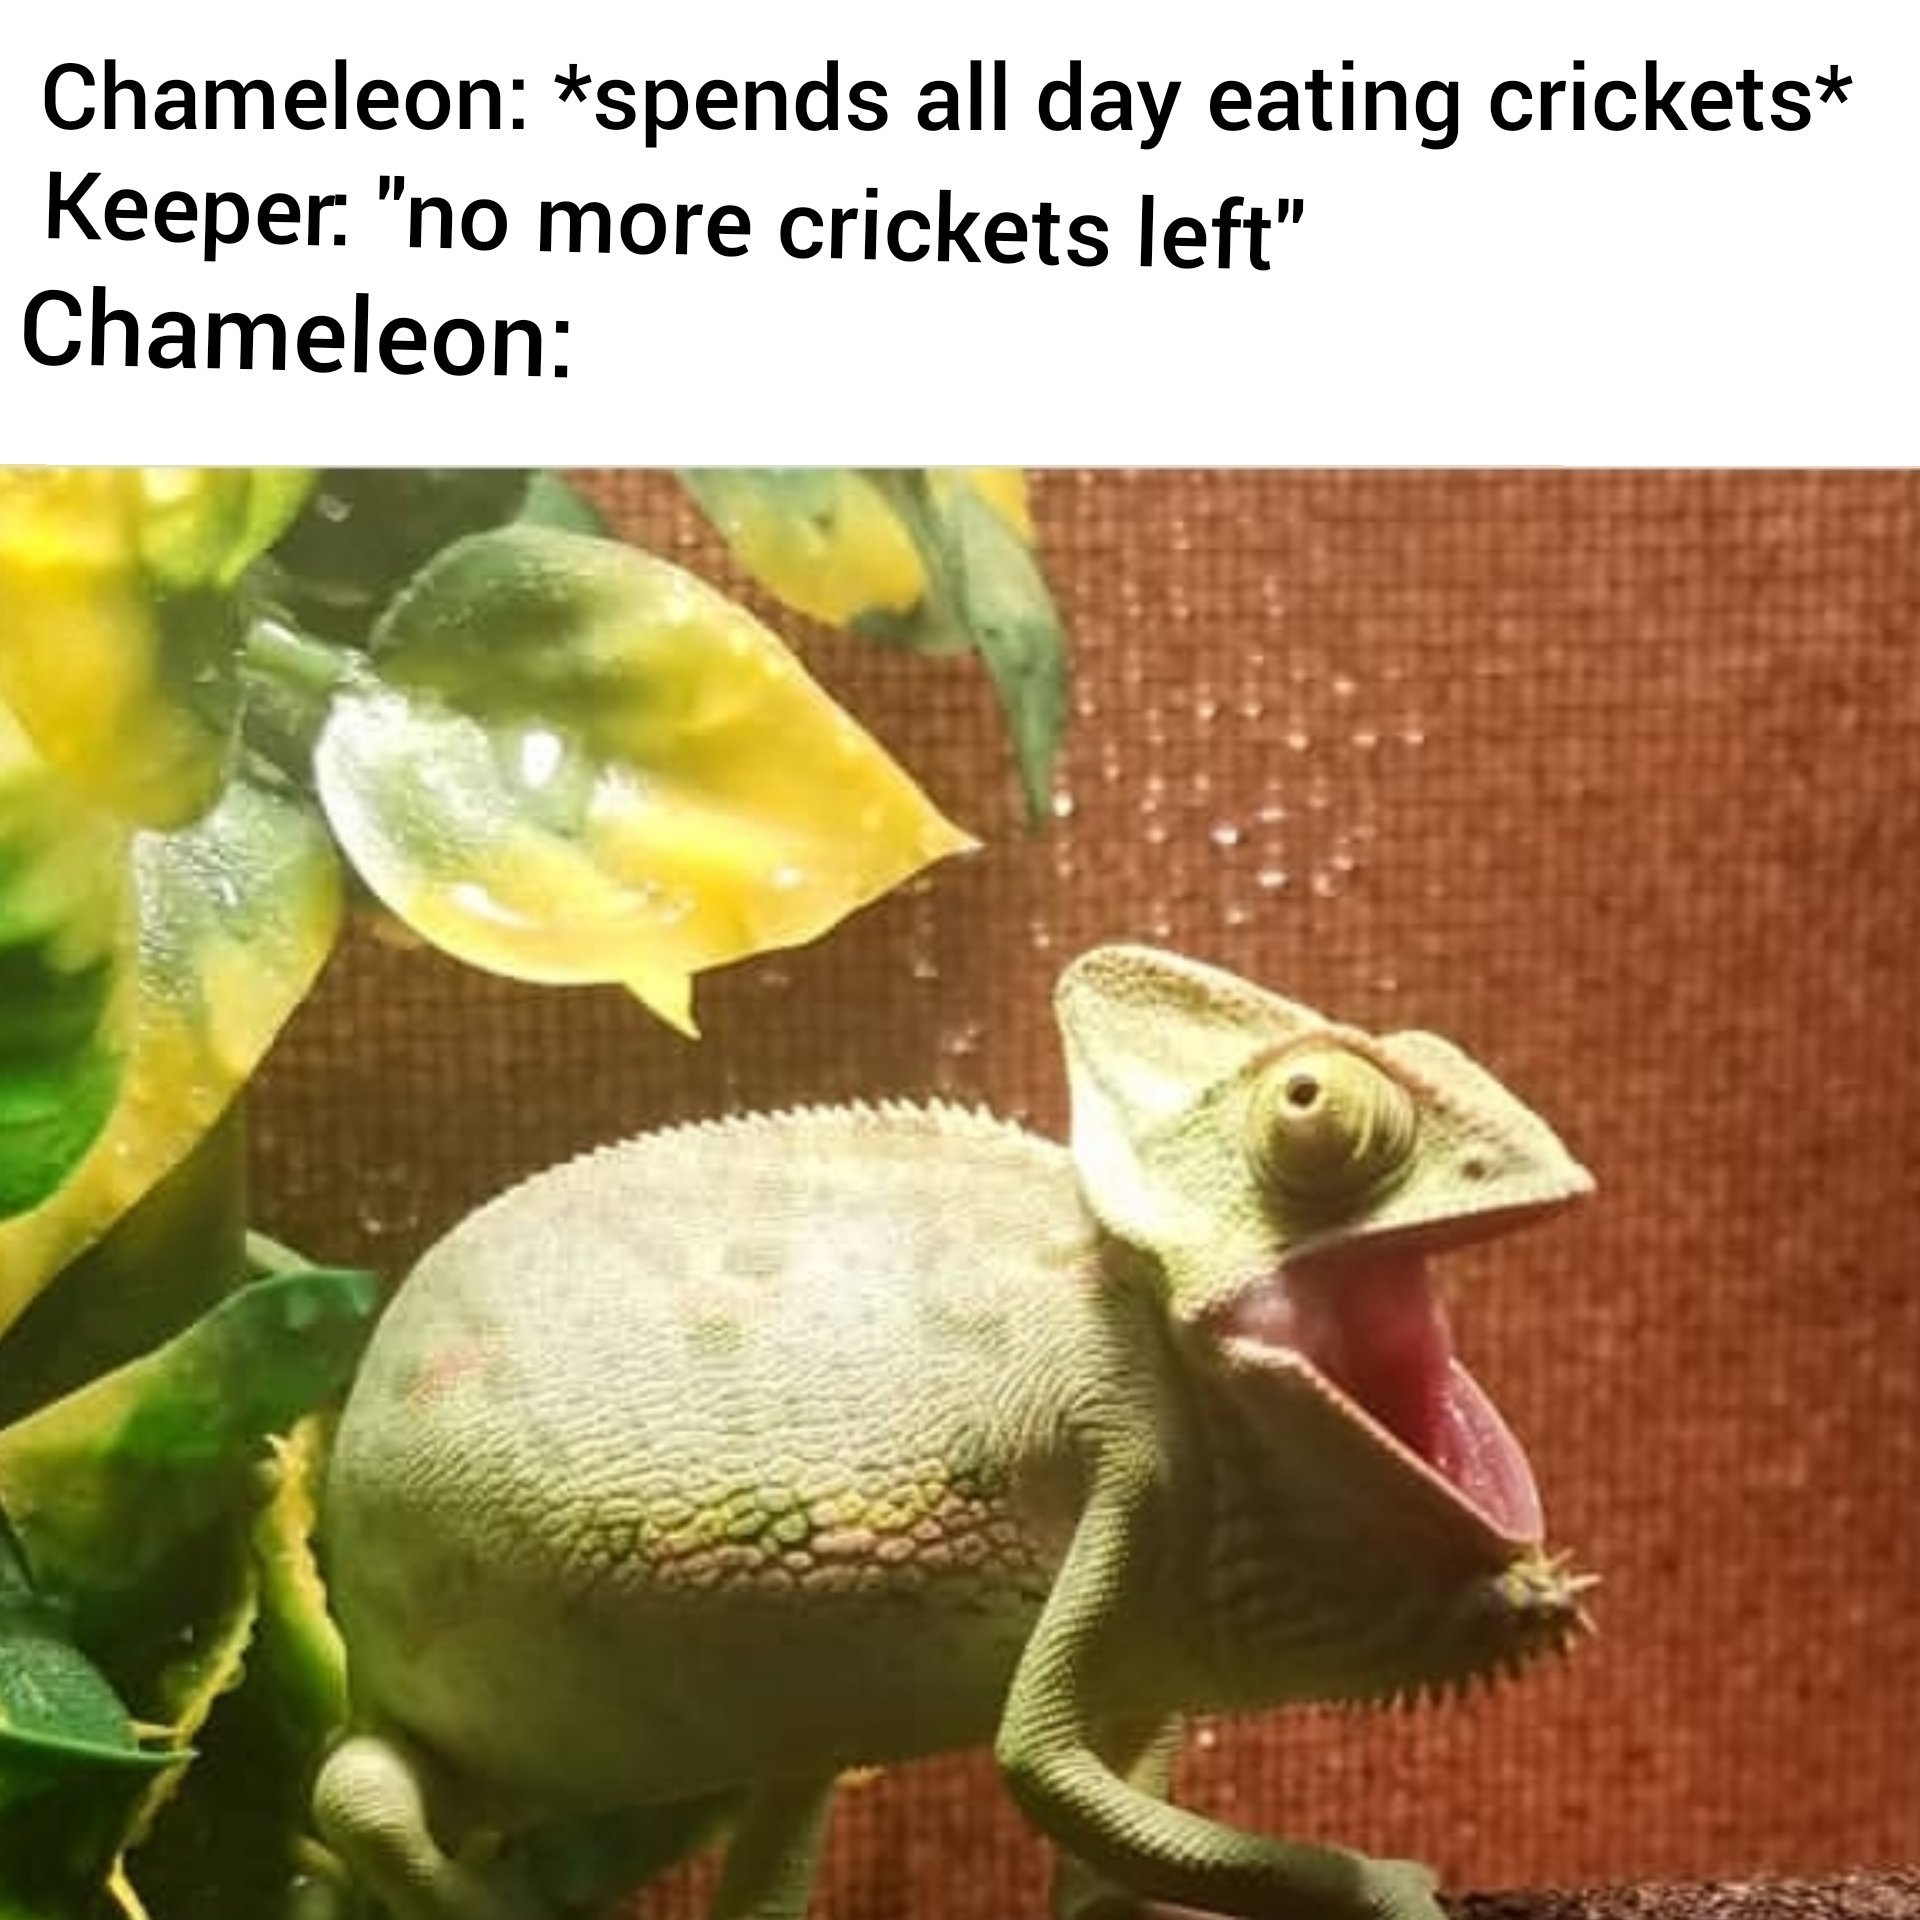 Chameleons are fukn awsome - meme